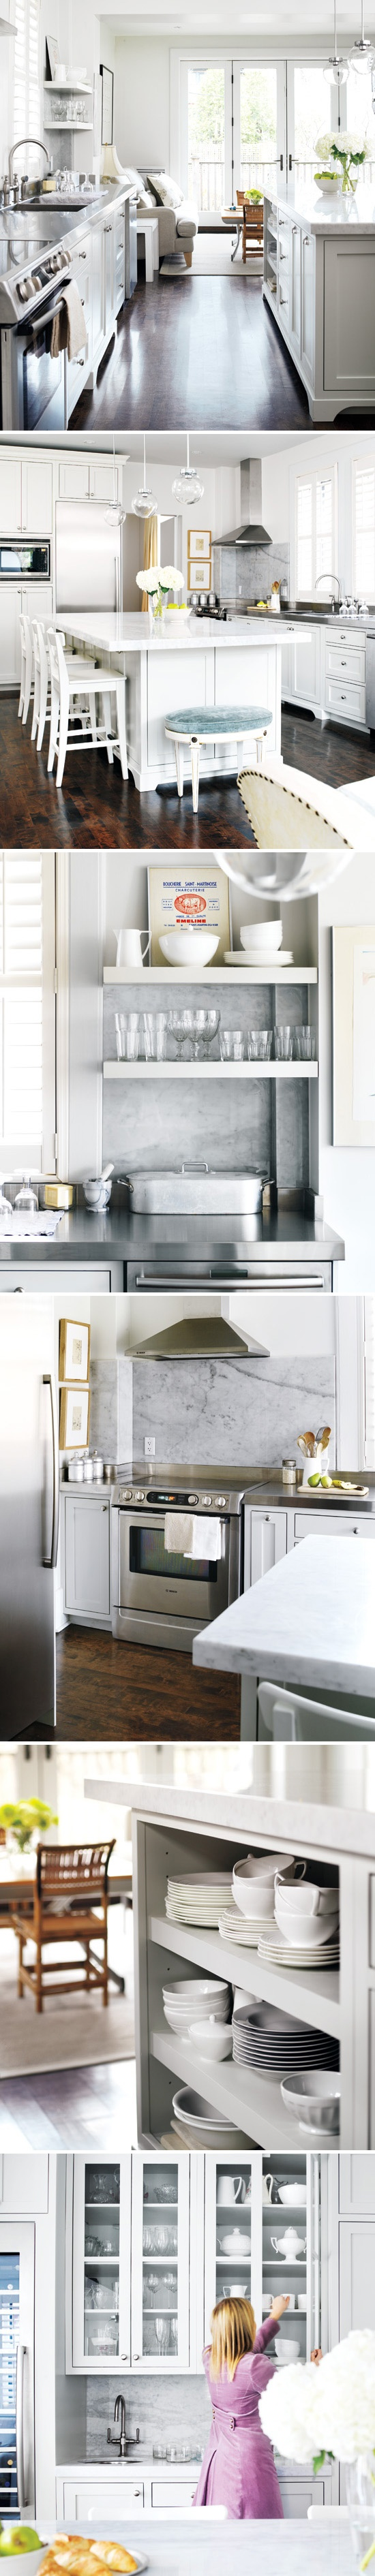 Stylish kitchen w/ great dark wood floors & white marble countertops. Love that island, the light orbs & the little bench. | #kitchen #neutral #styleathome #whites